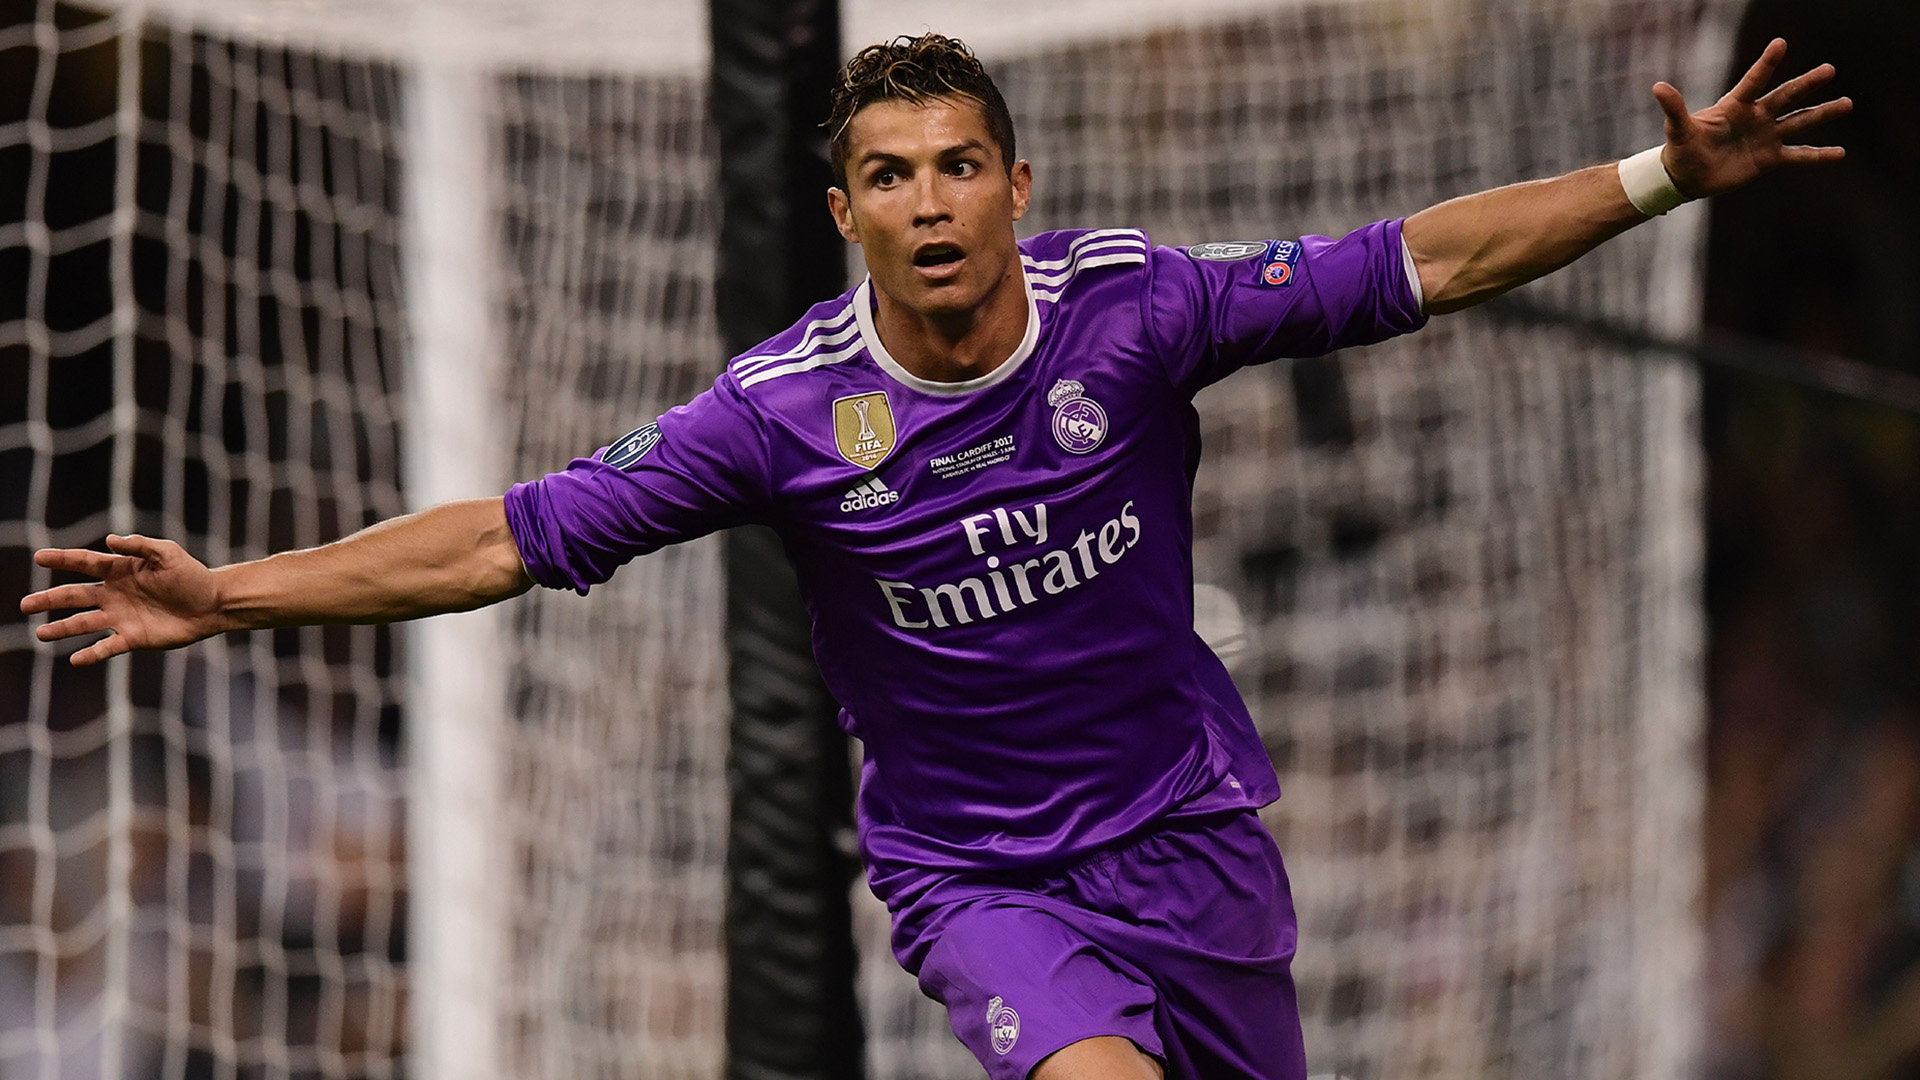 True champion: Ronaldo helps Real Madrid make history